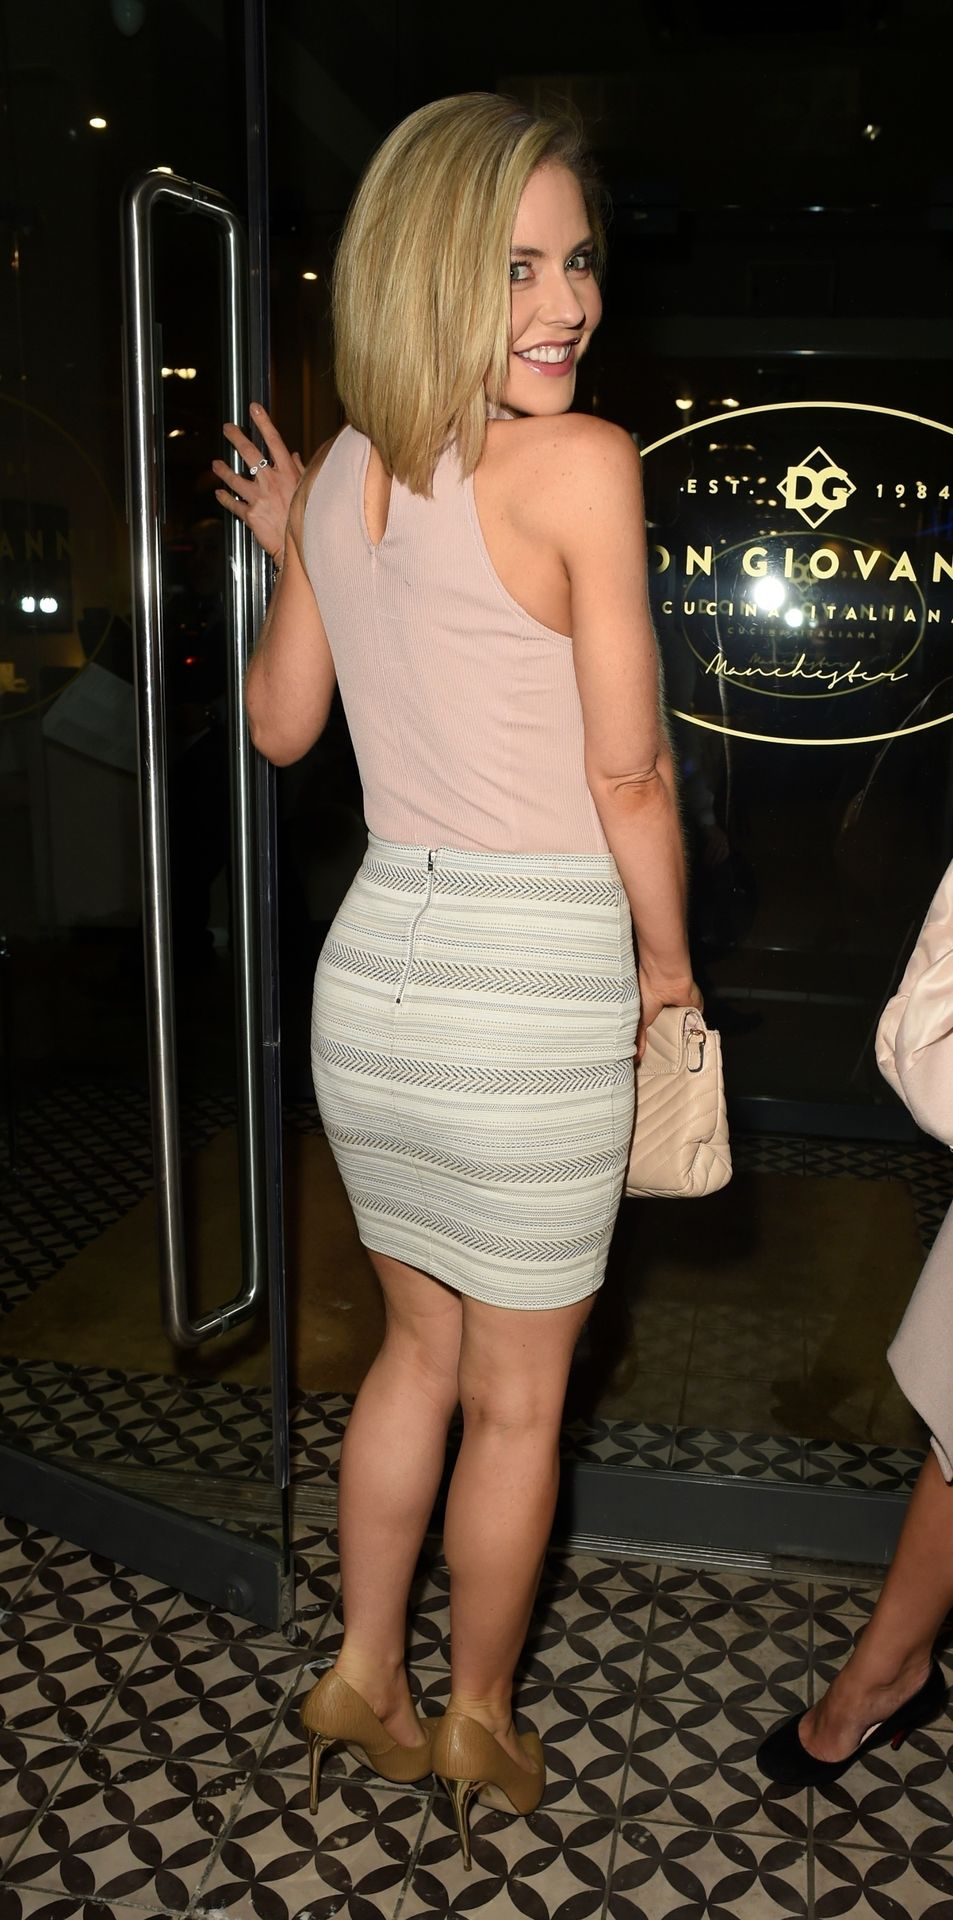 Braless Stephanie Waring Pictured at Don Giovanni Restaurant in Manchester (43 Photos)